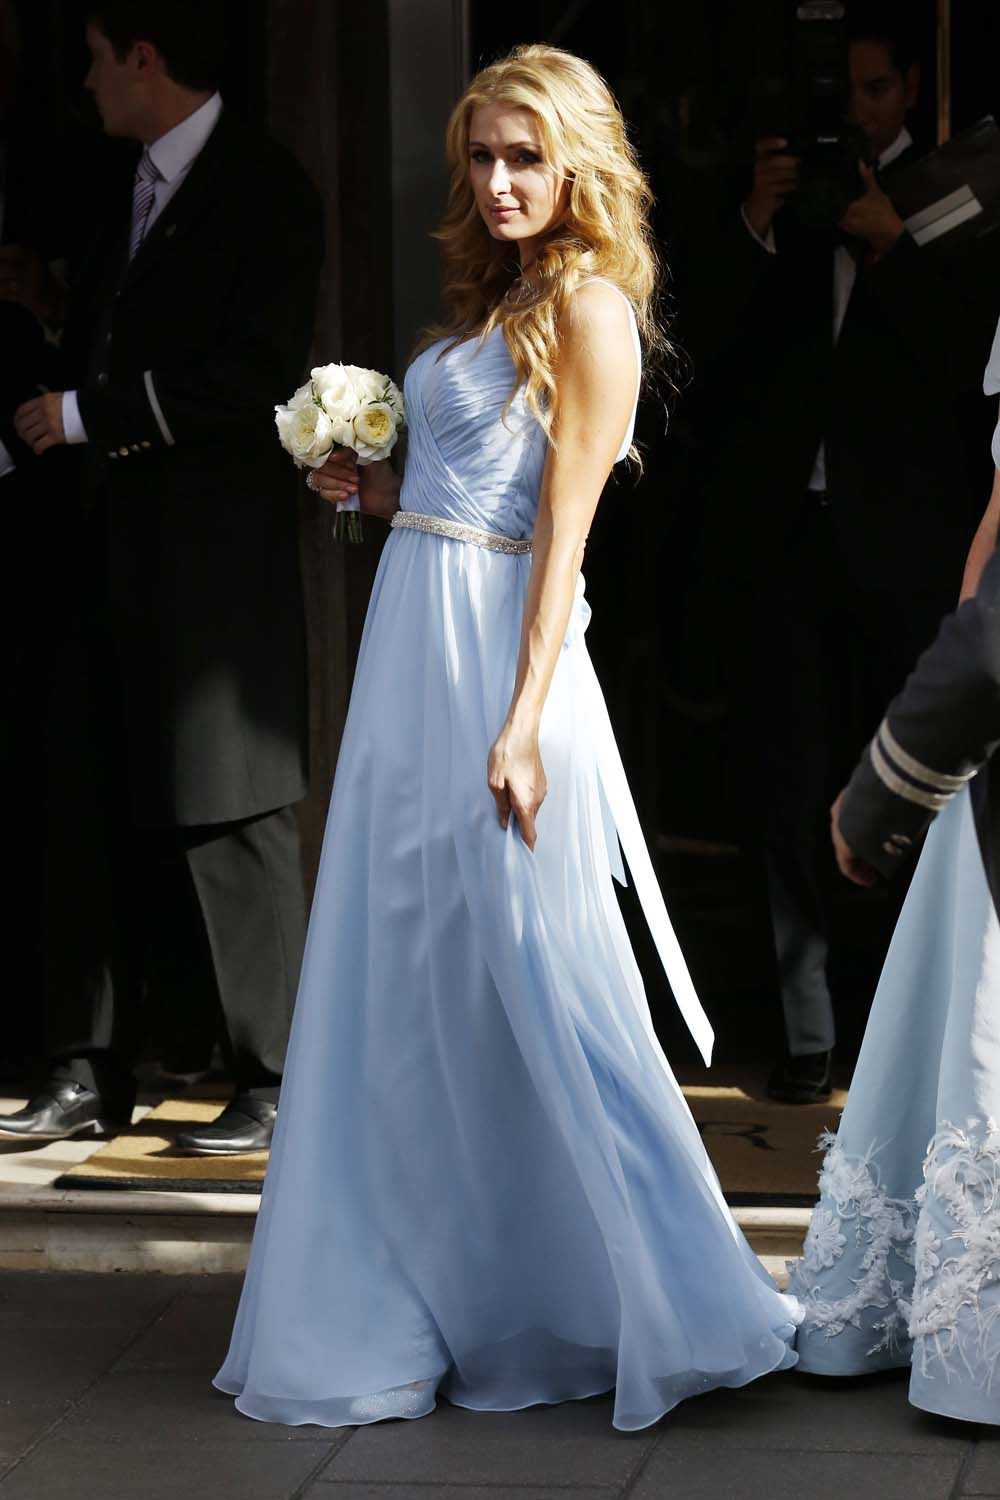 21 Celebrities Who Made The Perfect Bridesmaids | Marie Claire Australia